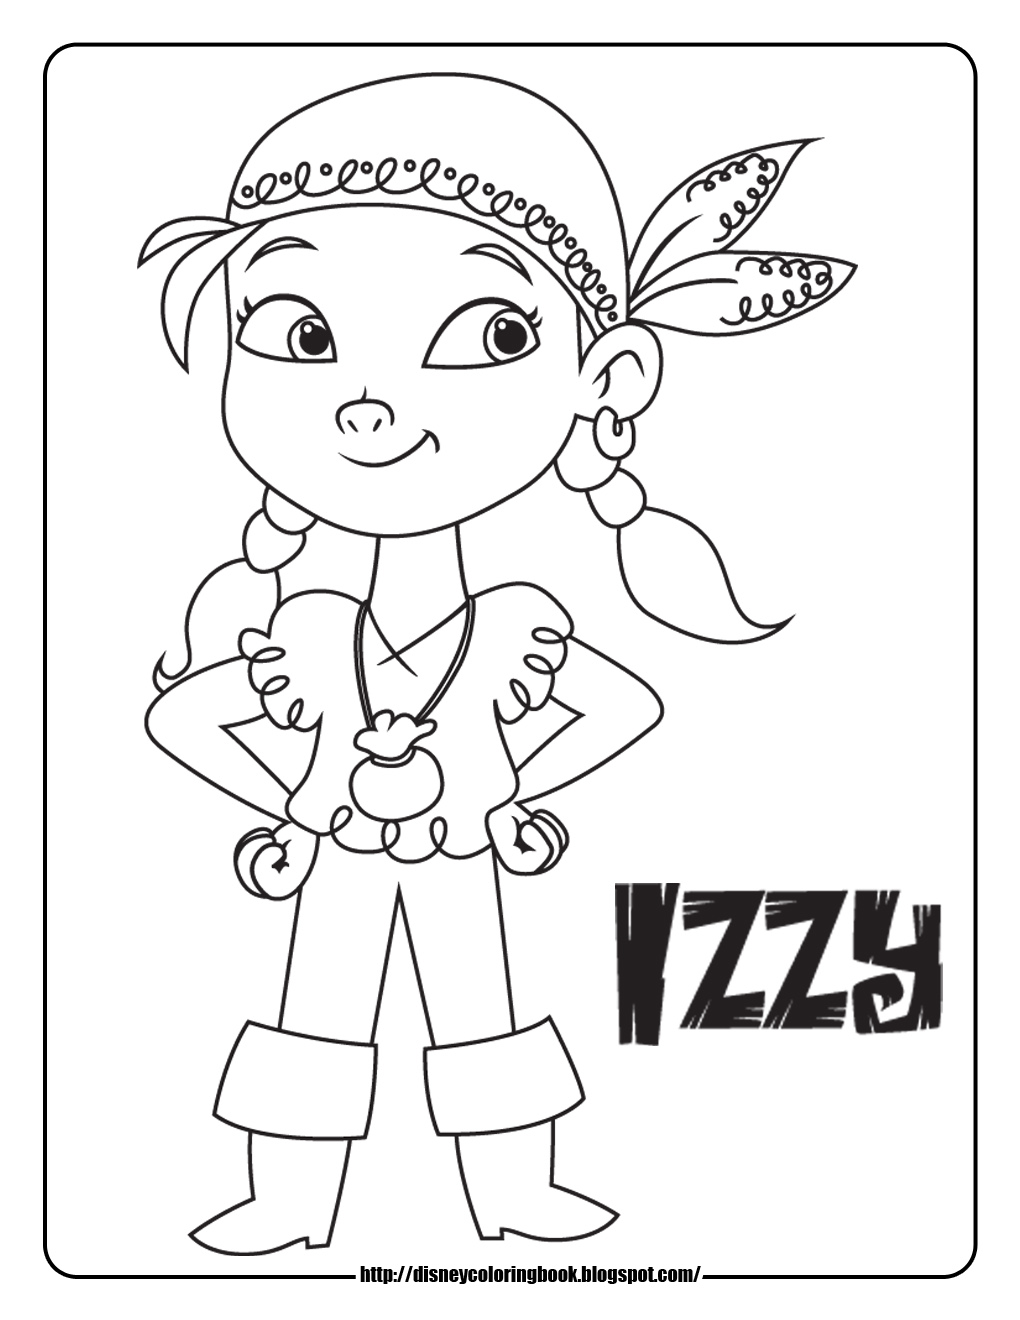 Jake and the Neverland Pirates 1 Free Disney Coloring